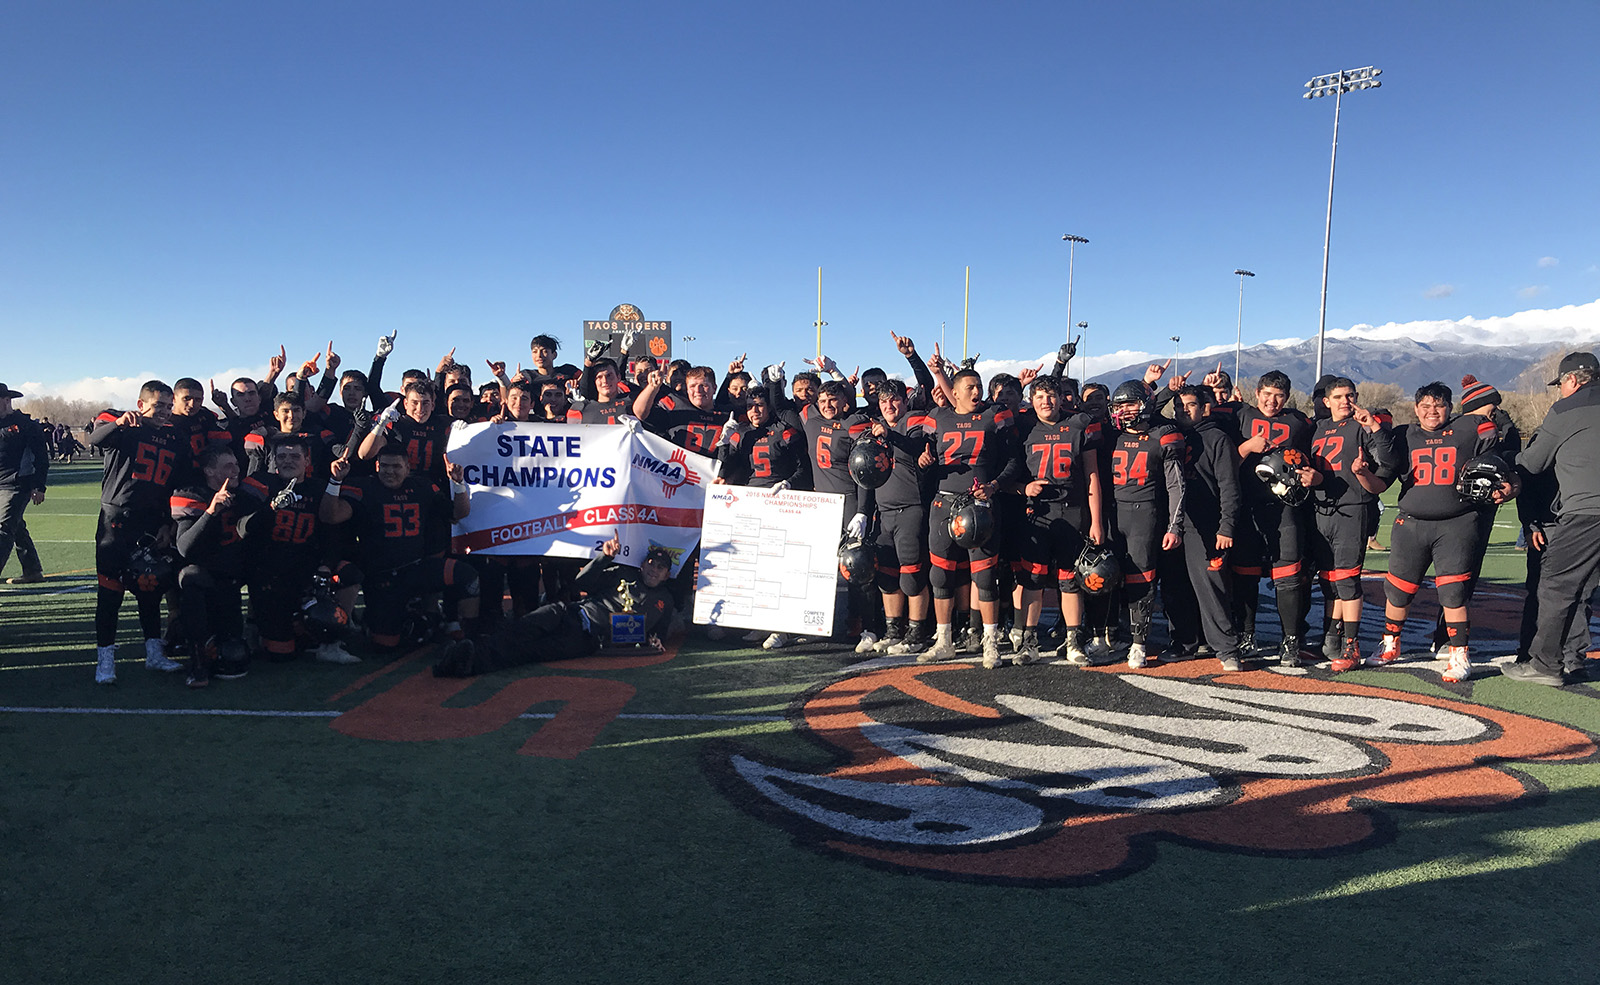 2018 State Champion Taos Tiger